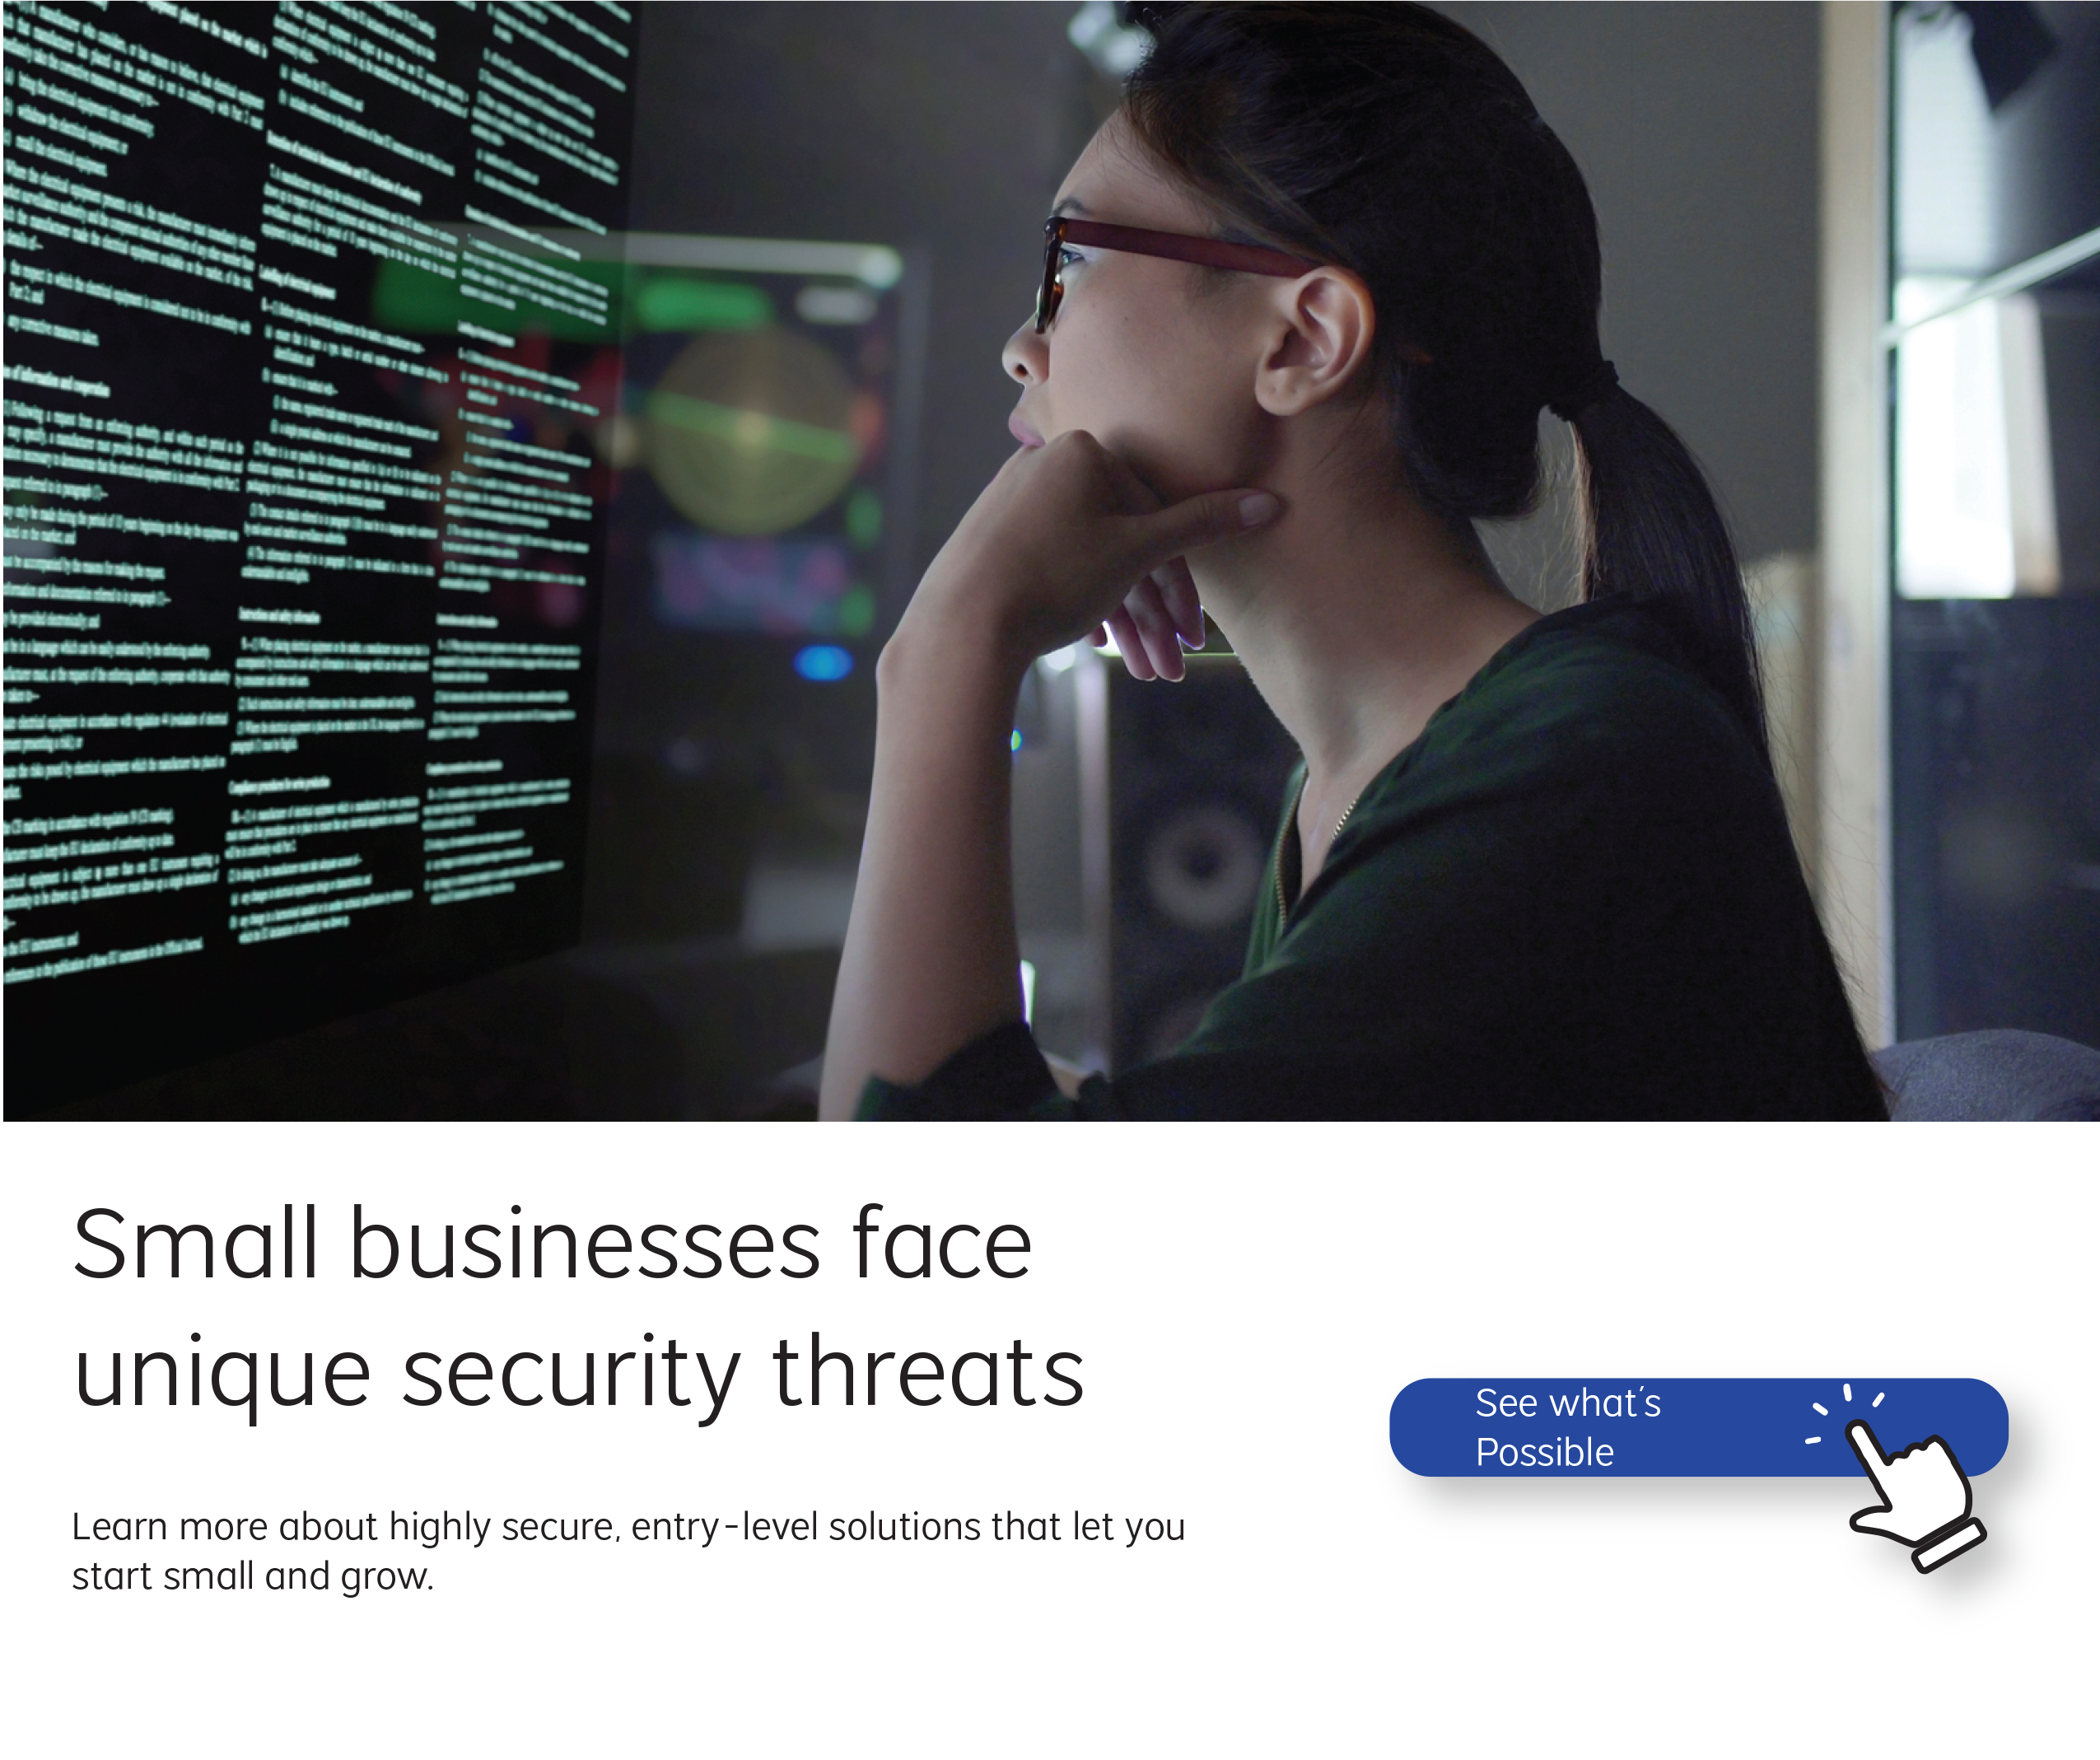 Protect your business by protecting your data